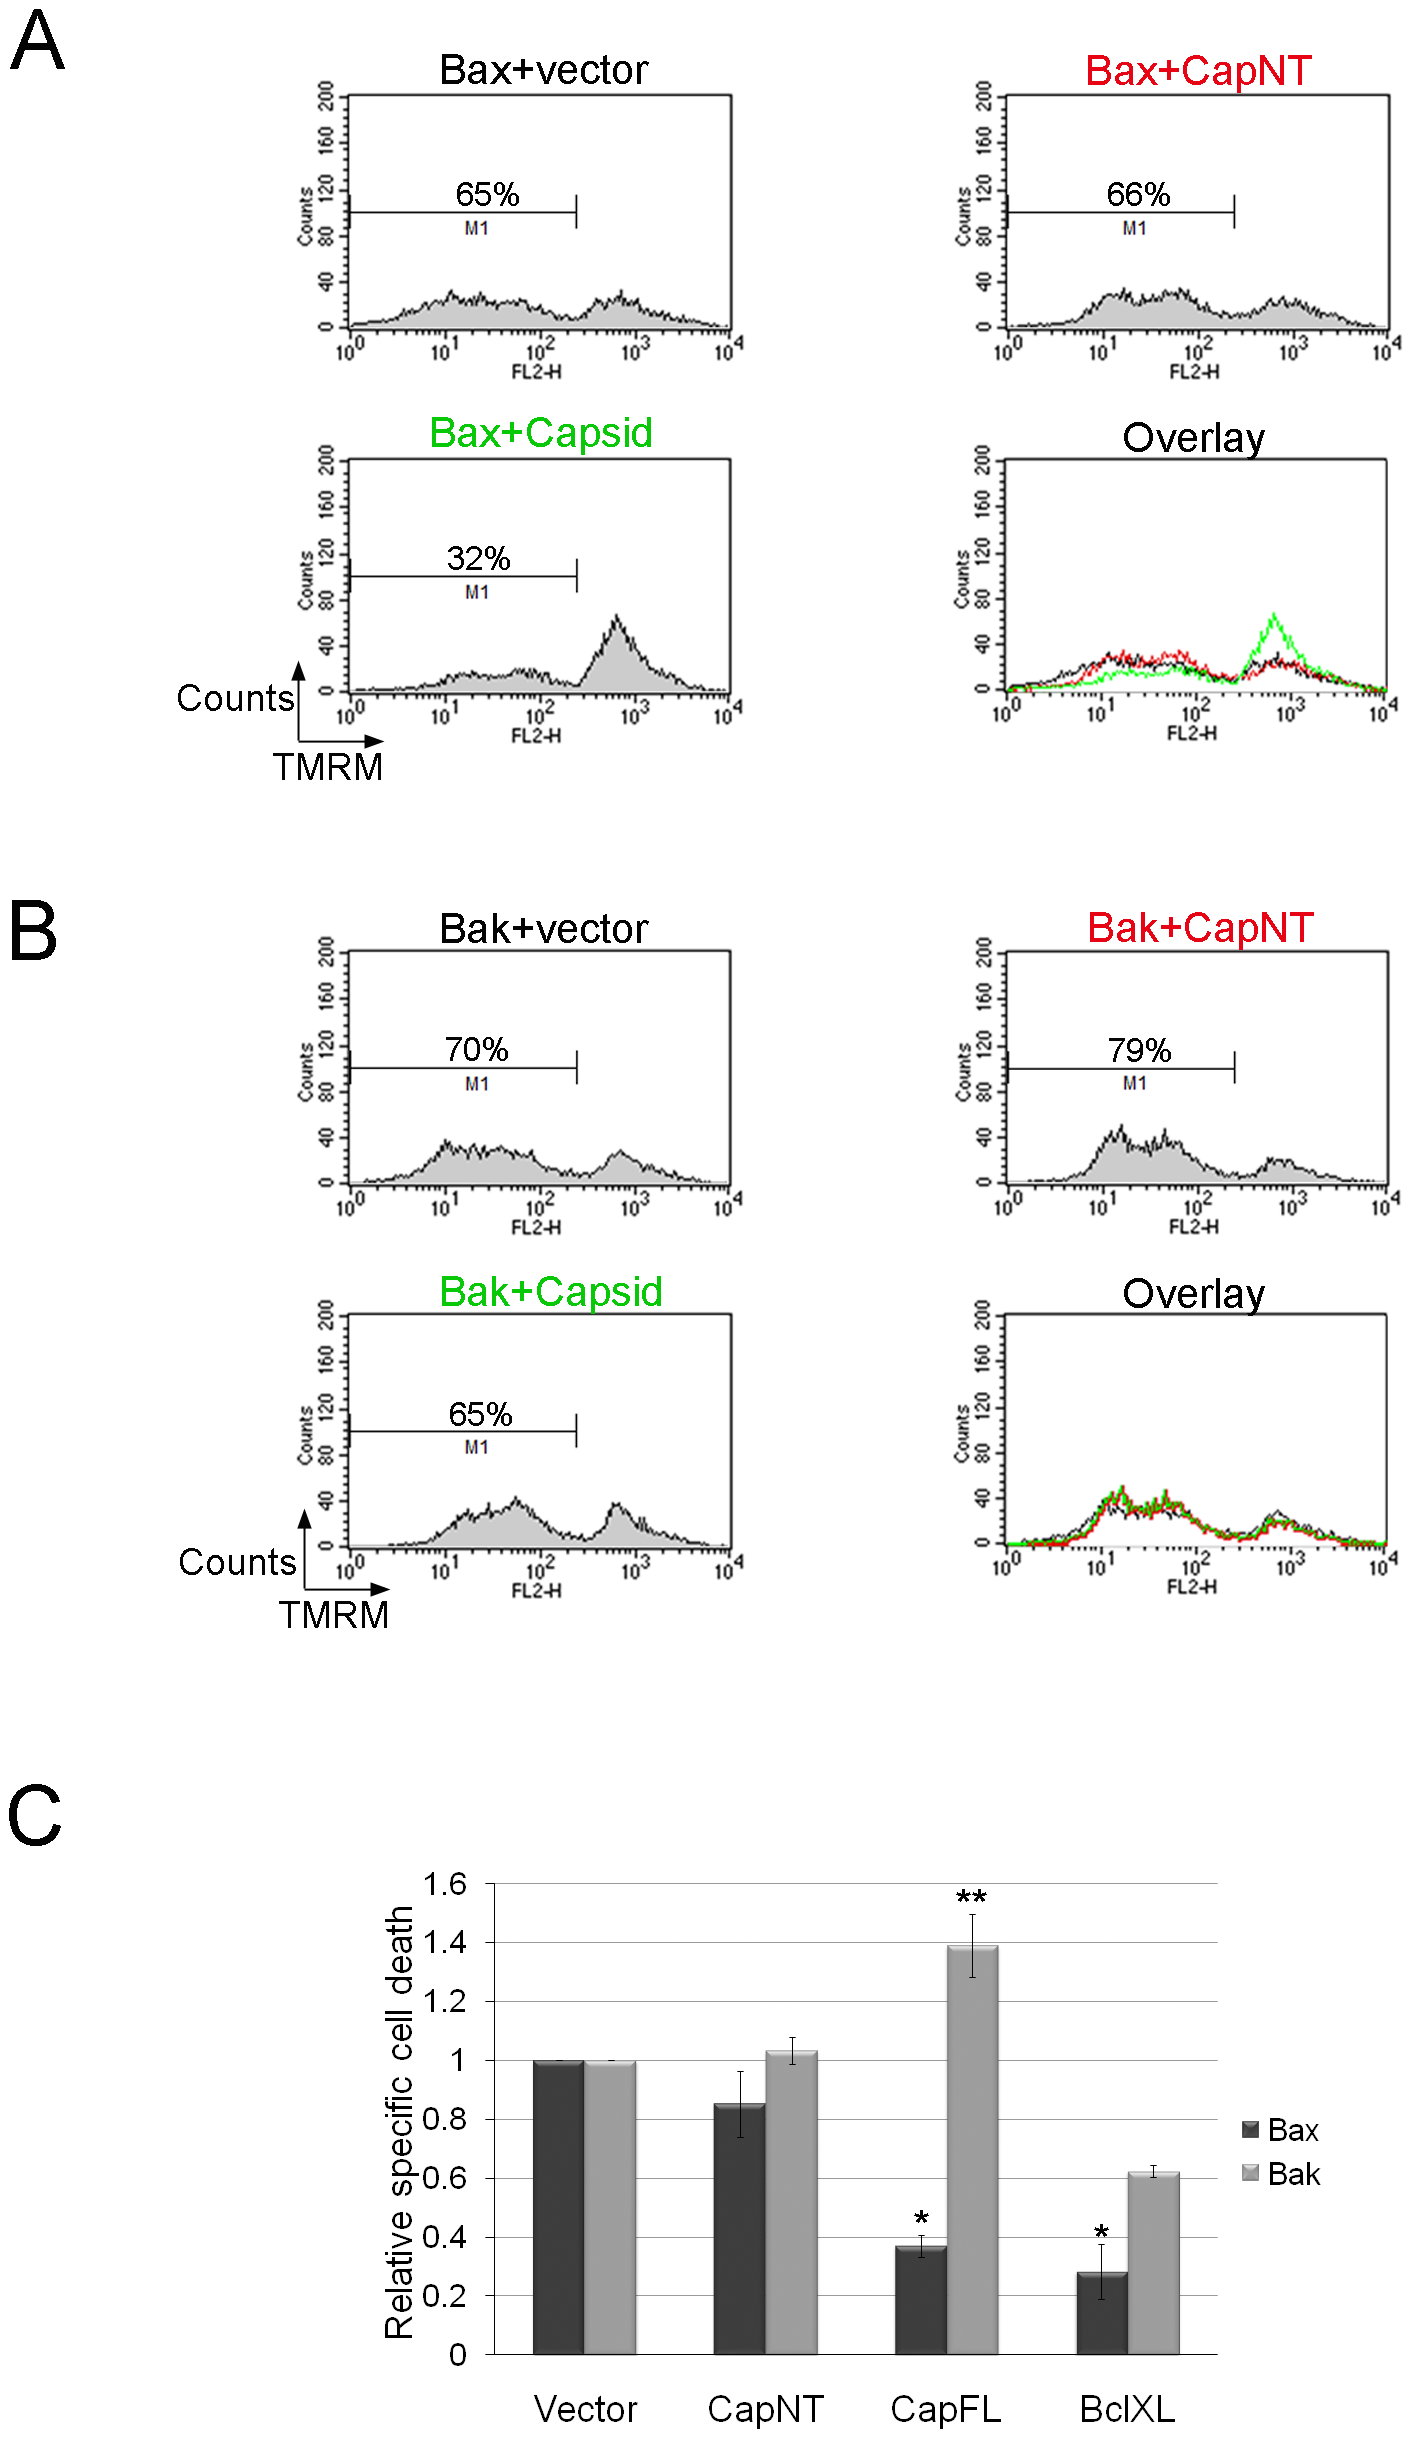 Capsid expression protects against Bax- but not Bak-induced apoptosis.